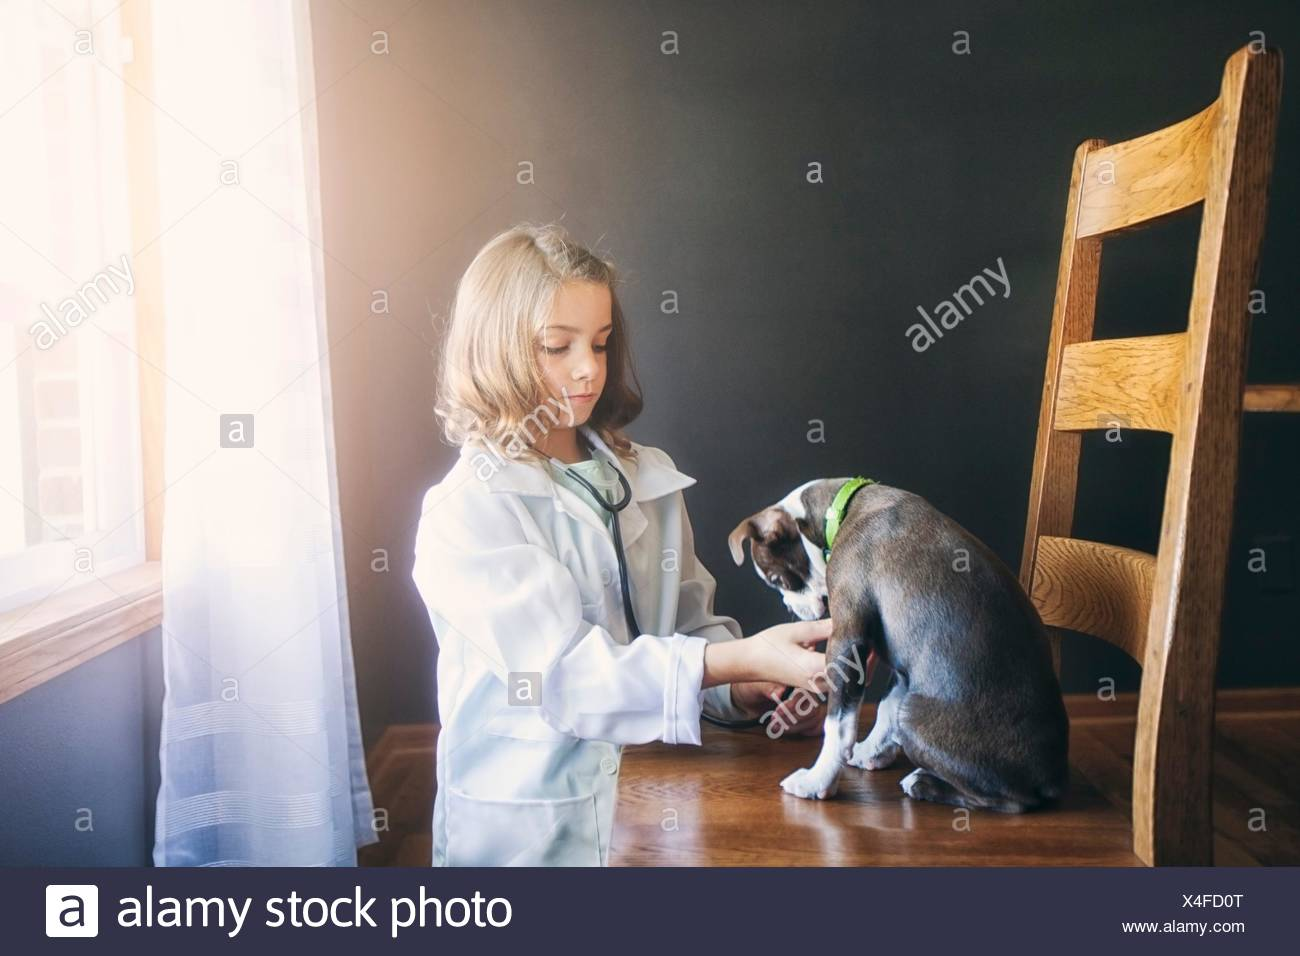 Girl dressed up as doctor kneeling tending to Boston terrier puppy sitting on chair - Stock Image